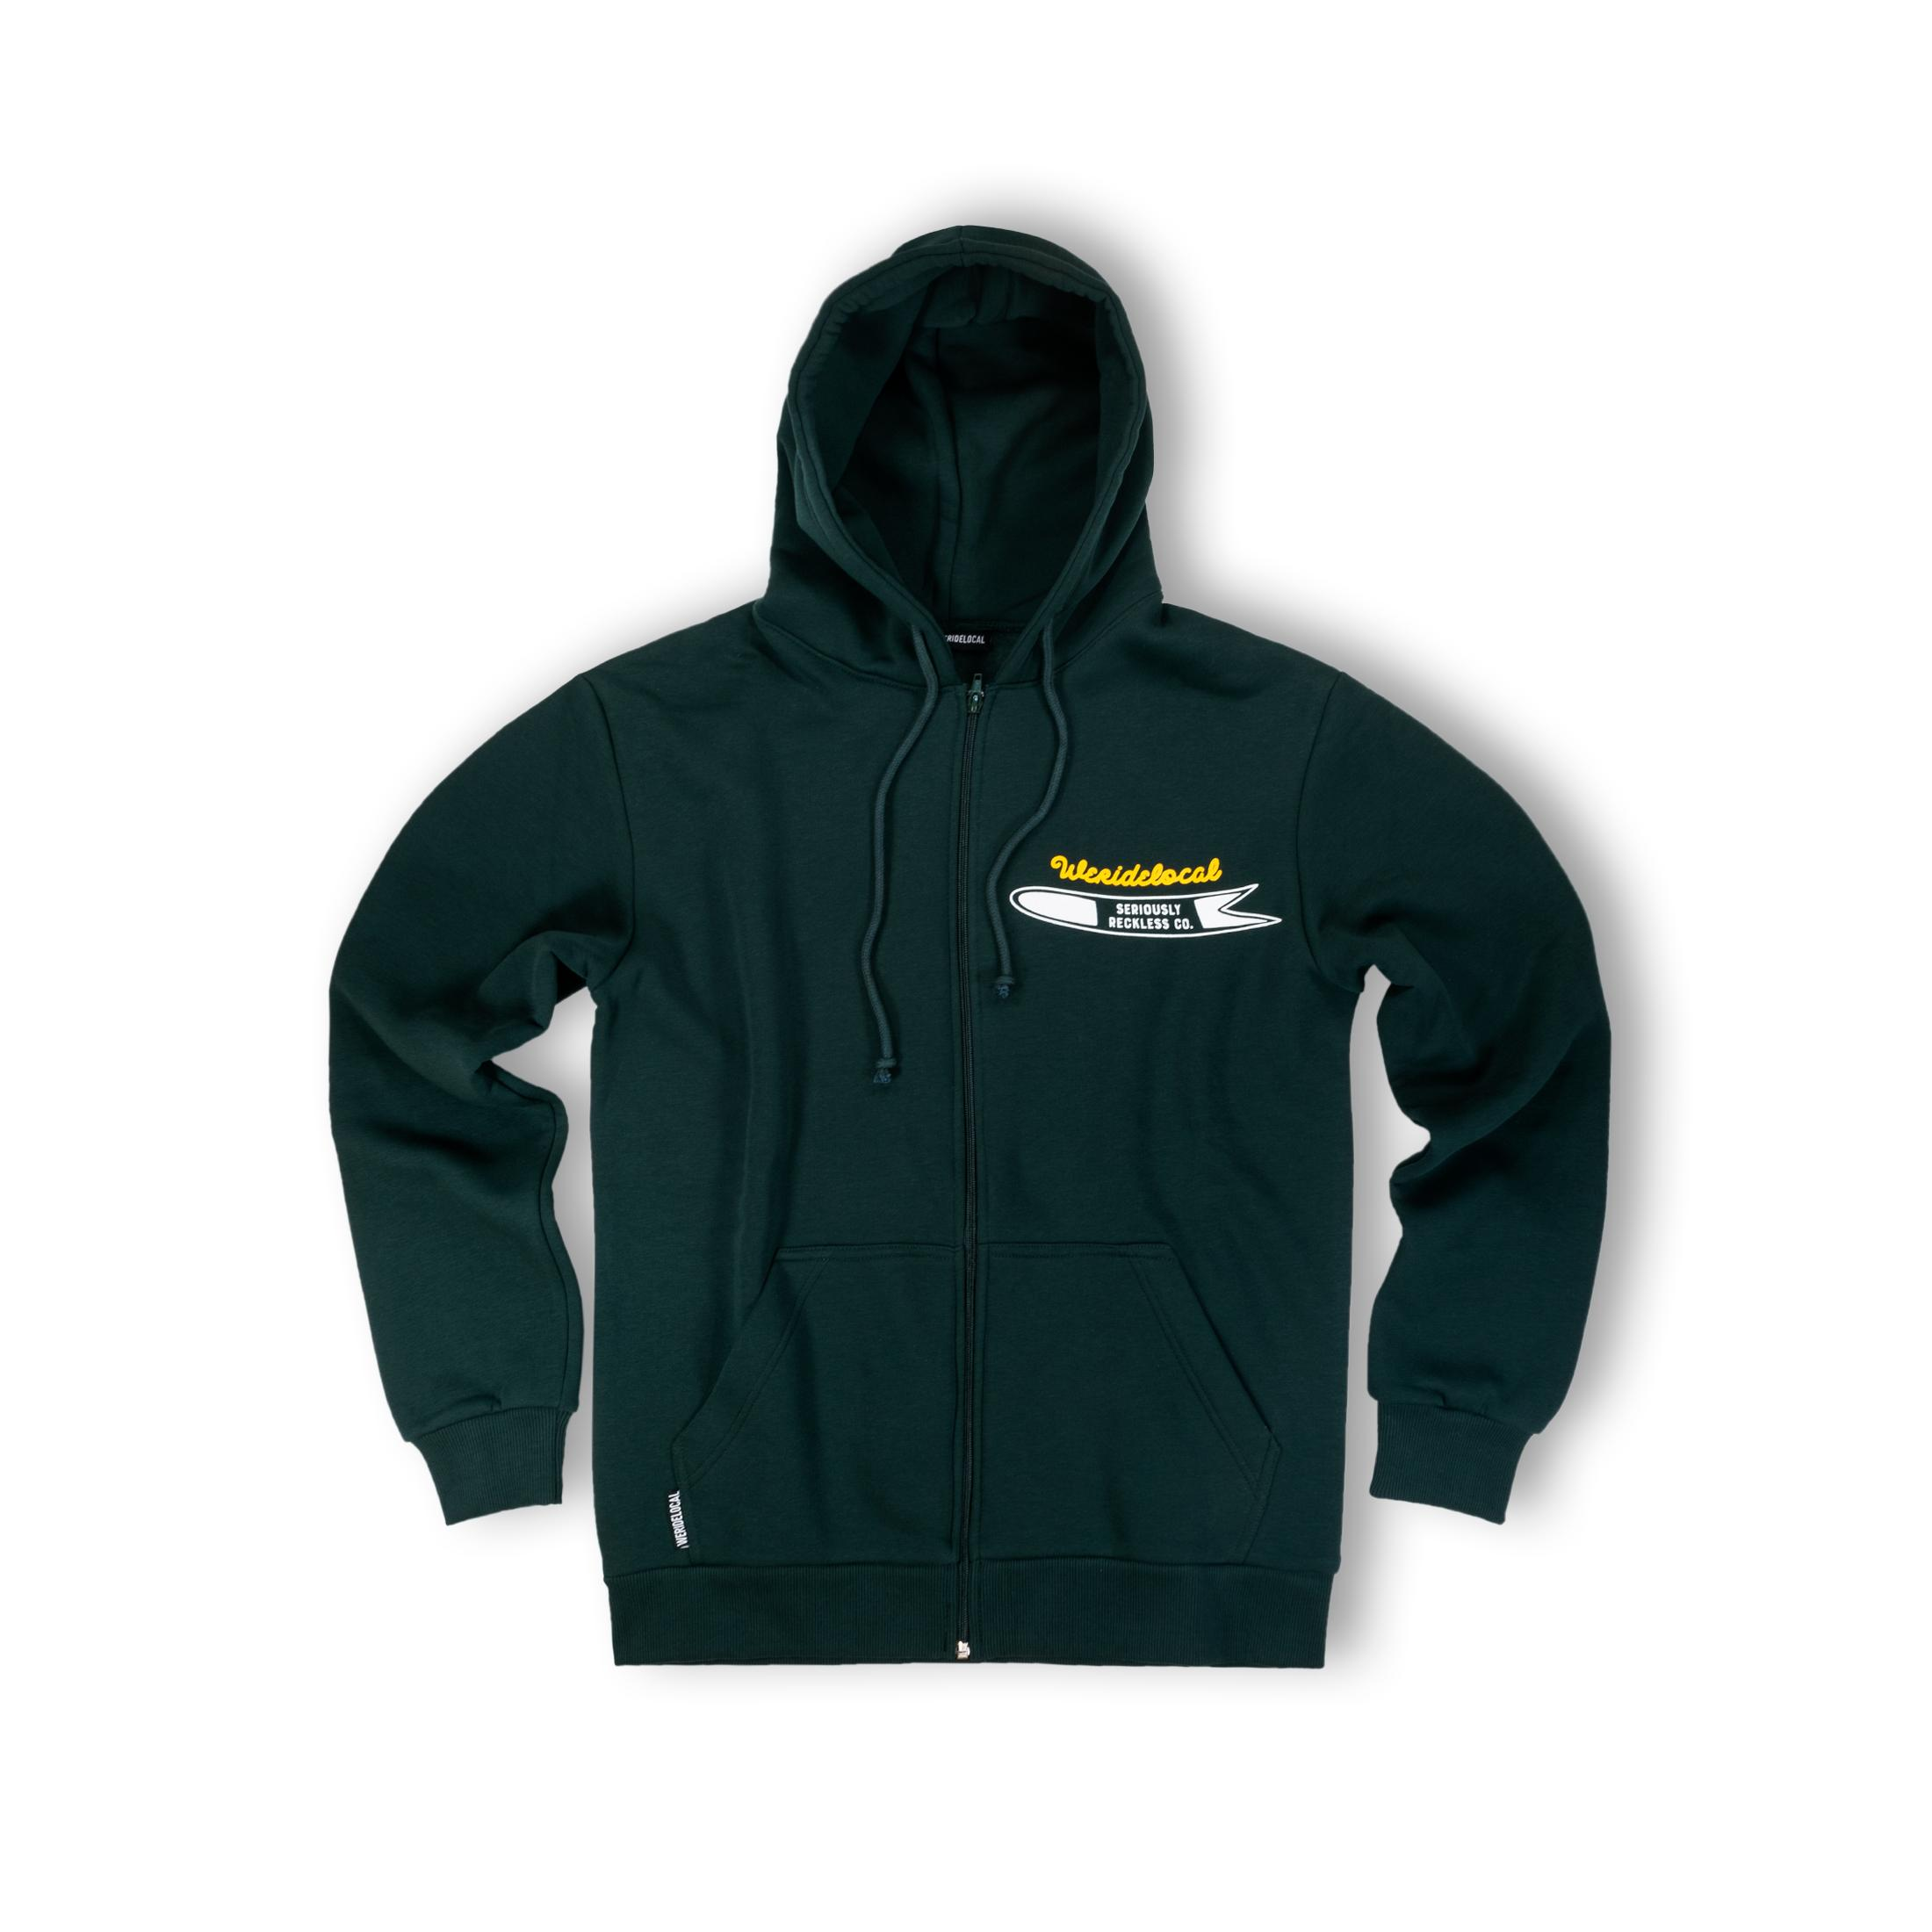 WE RIDE LOCAL (POWDAH SURFERS FOREST ZIPPED HOODIE)